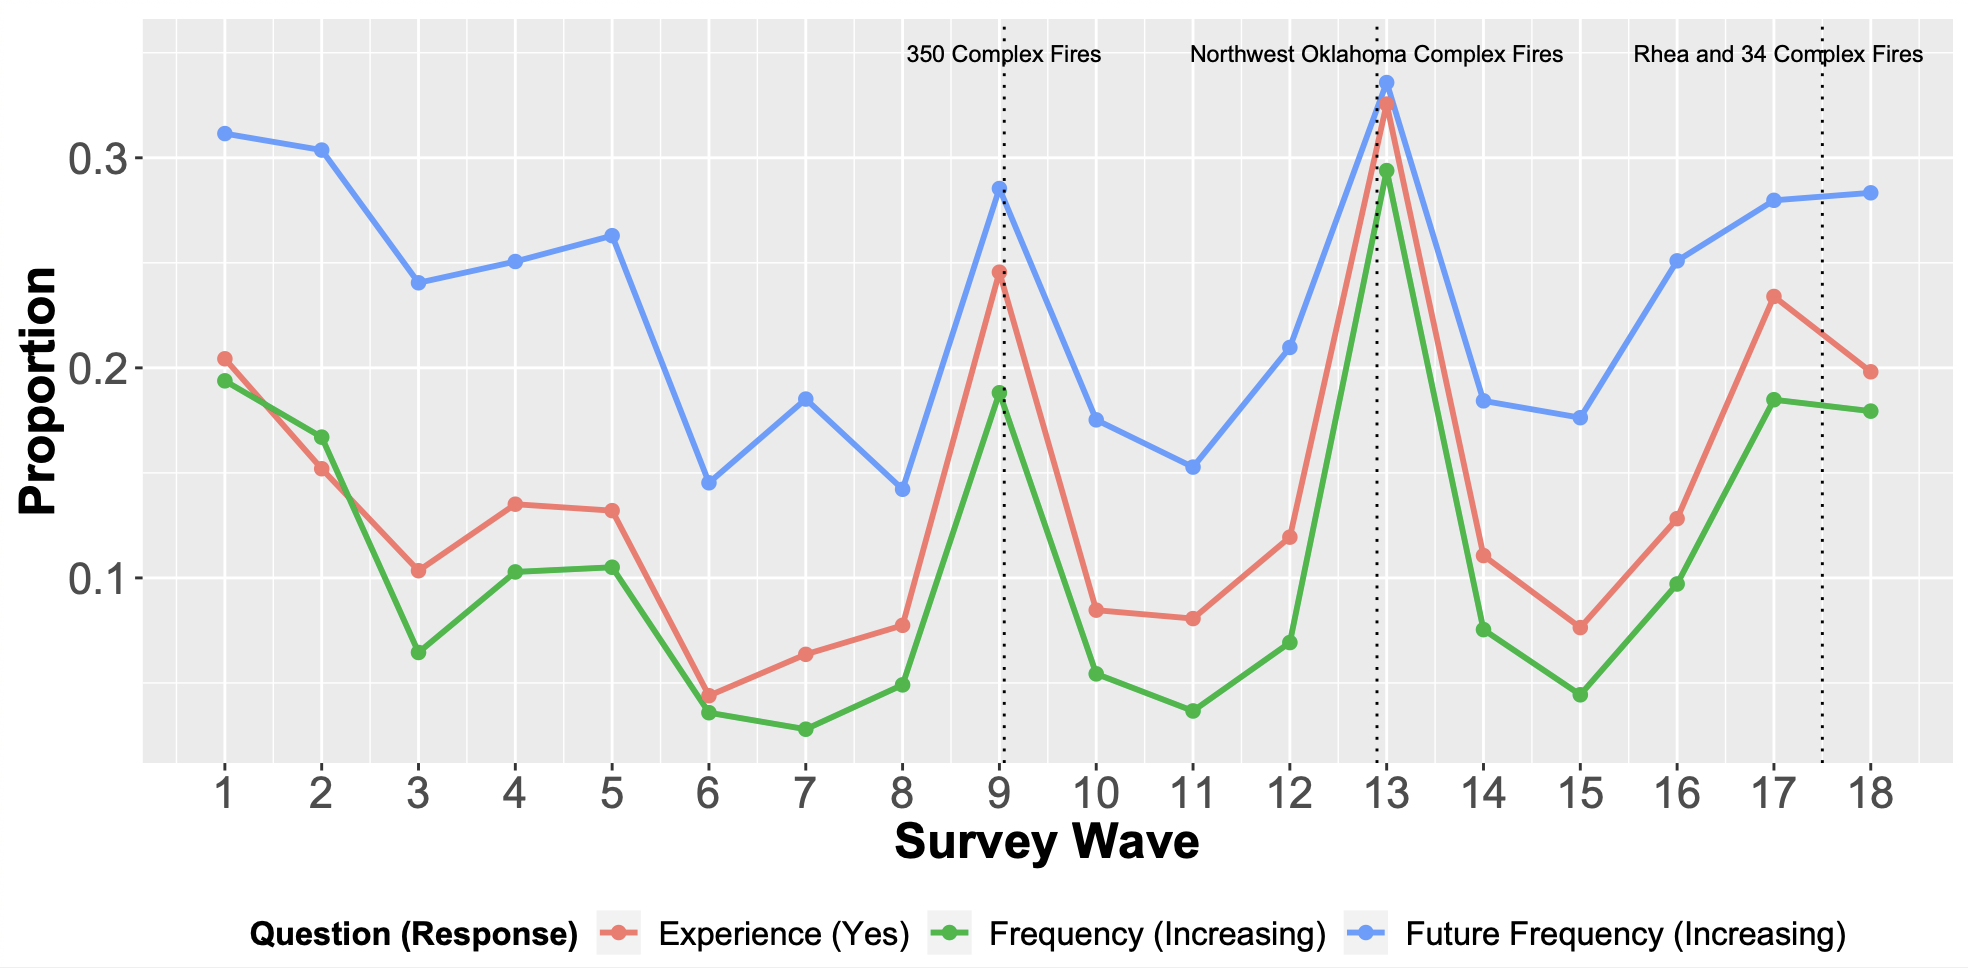 Graph of respondent answers over waves